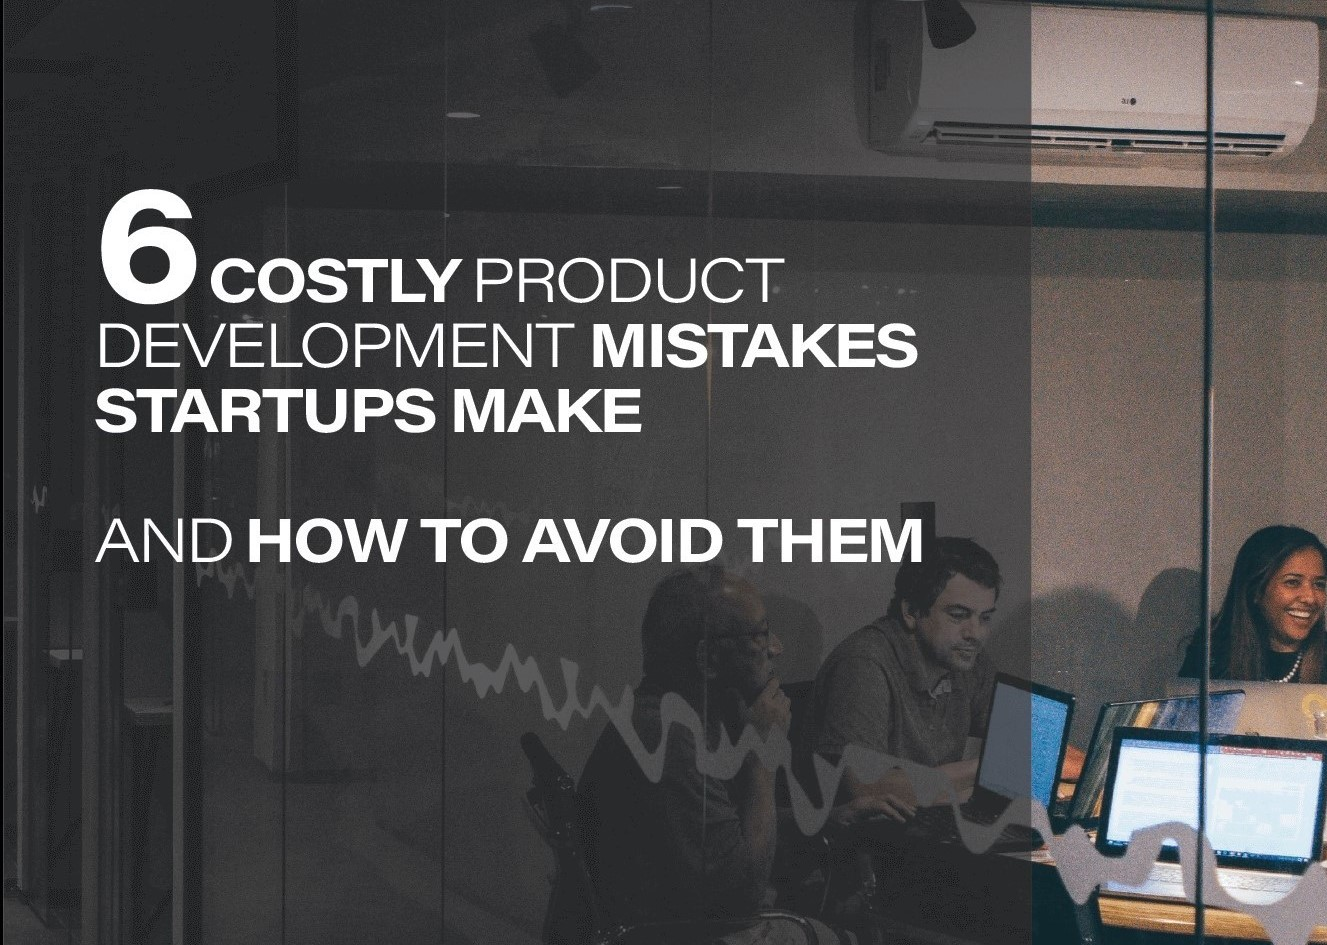 Startup tips: Product development mistakes and how to avoid them